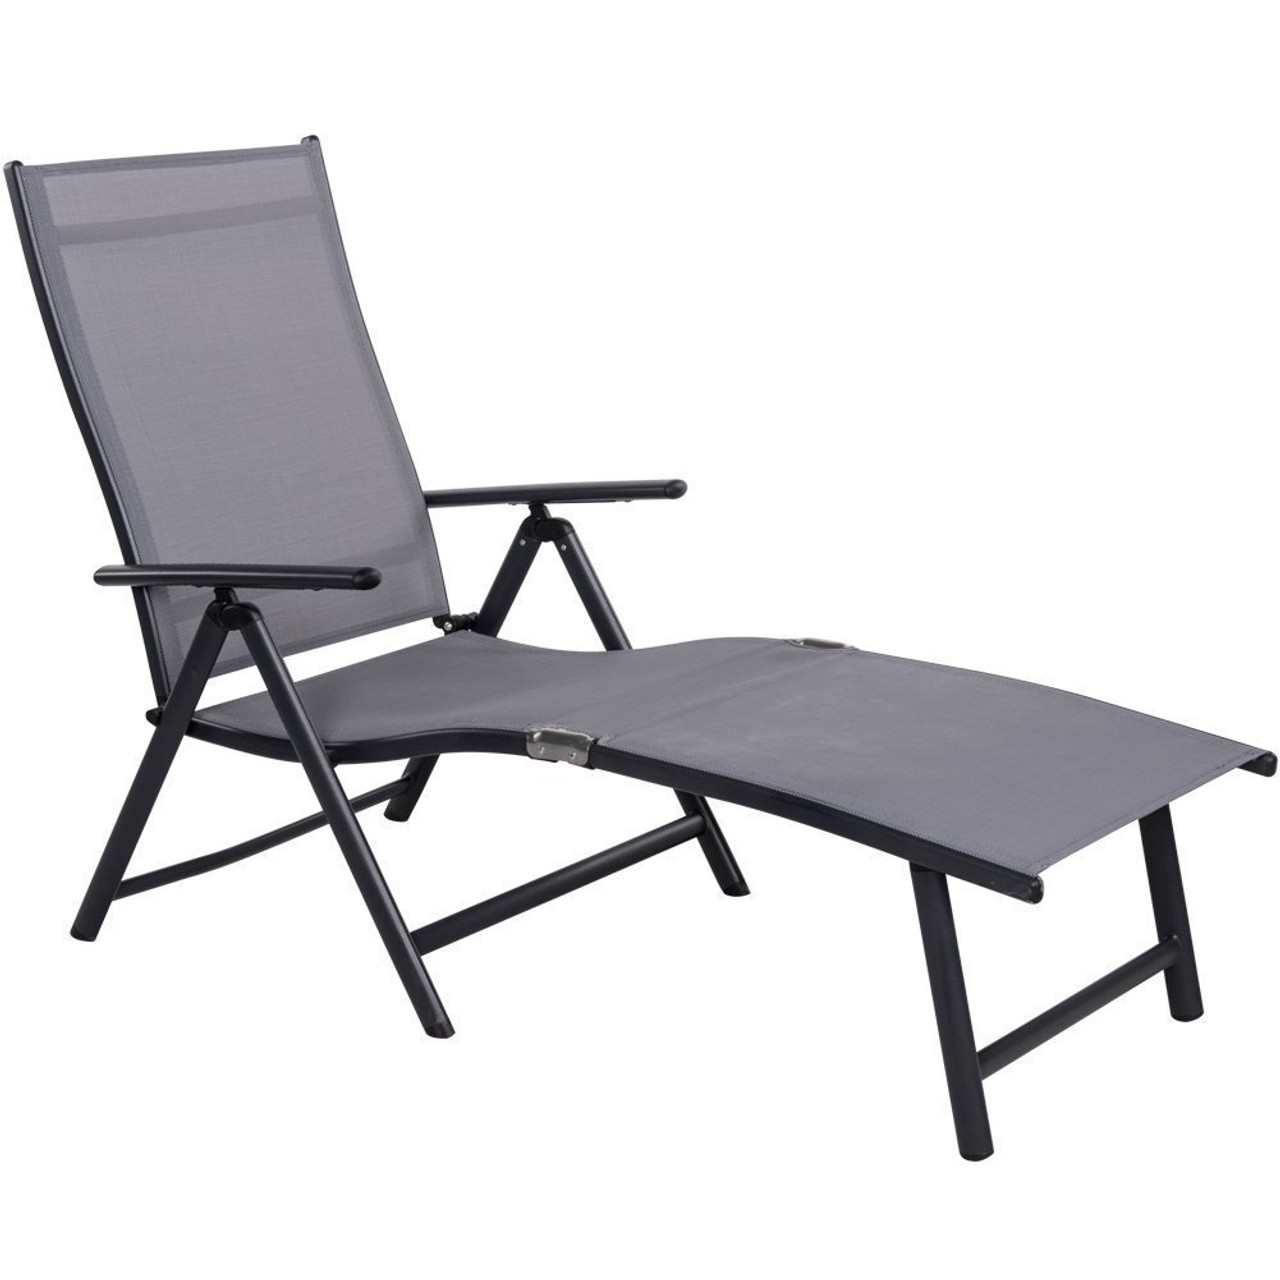 outdoor modern patio chaise ideas home lounge chairs folding